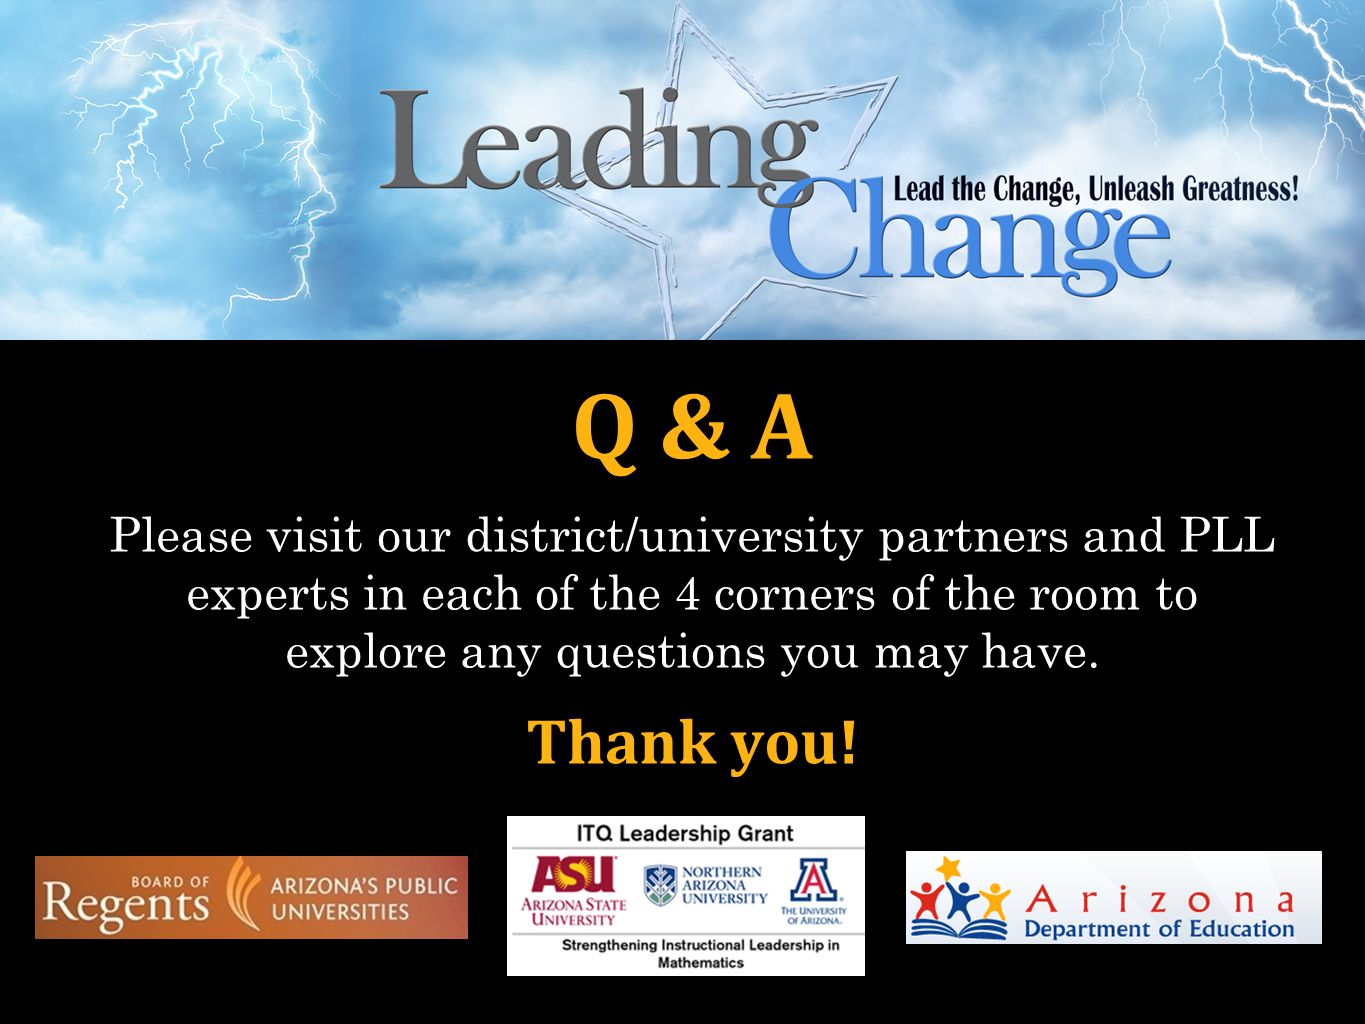 Q & A Please visit our district/university partners and PLL experts in each of the 4 corners of the room to explore any questions you may have.